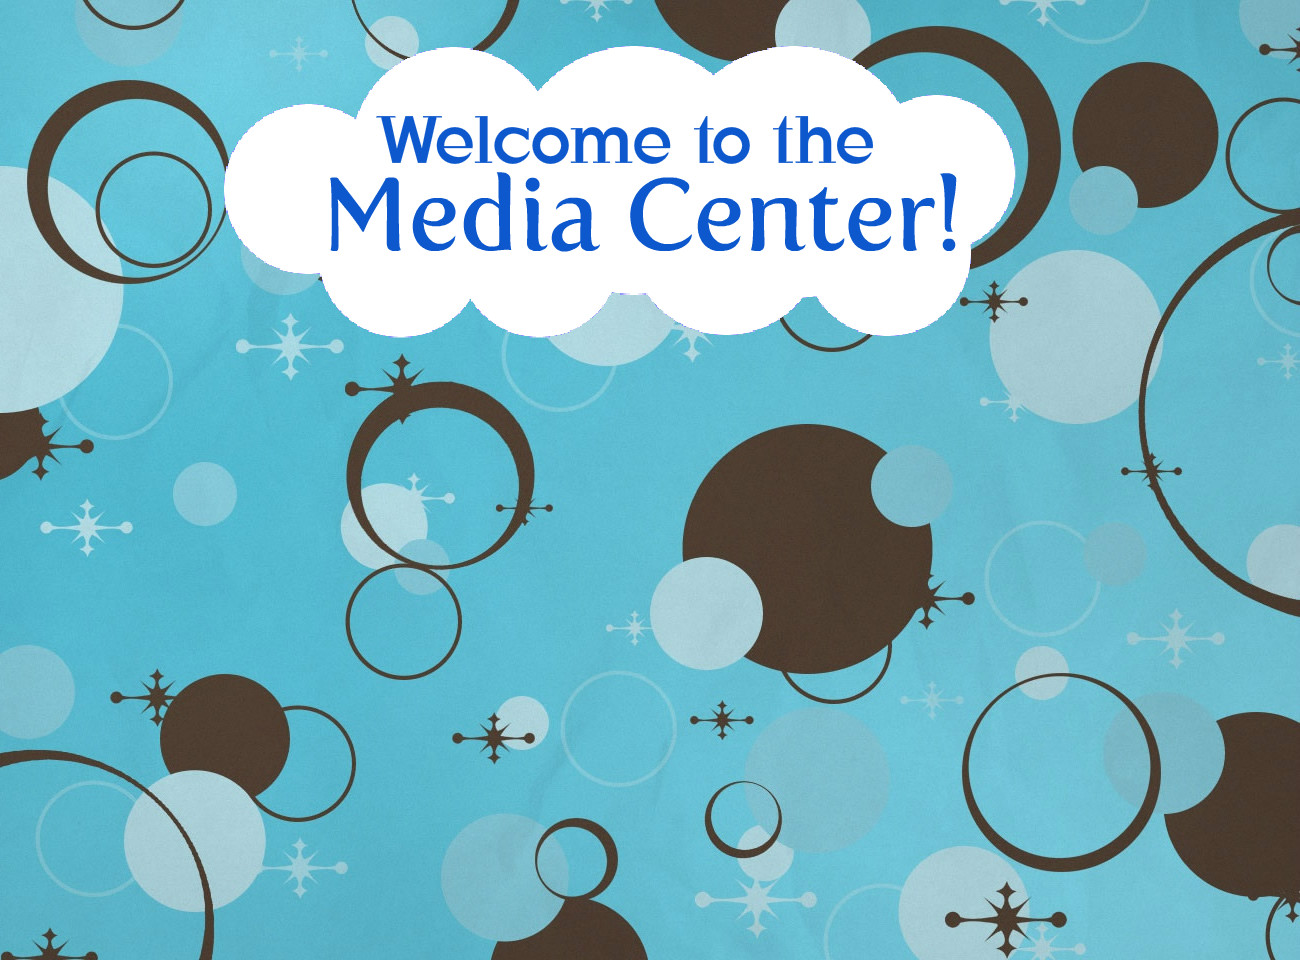 Welcome to Media Center